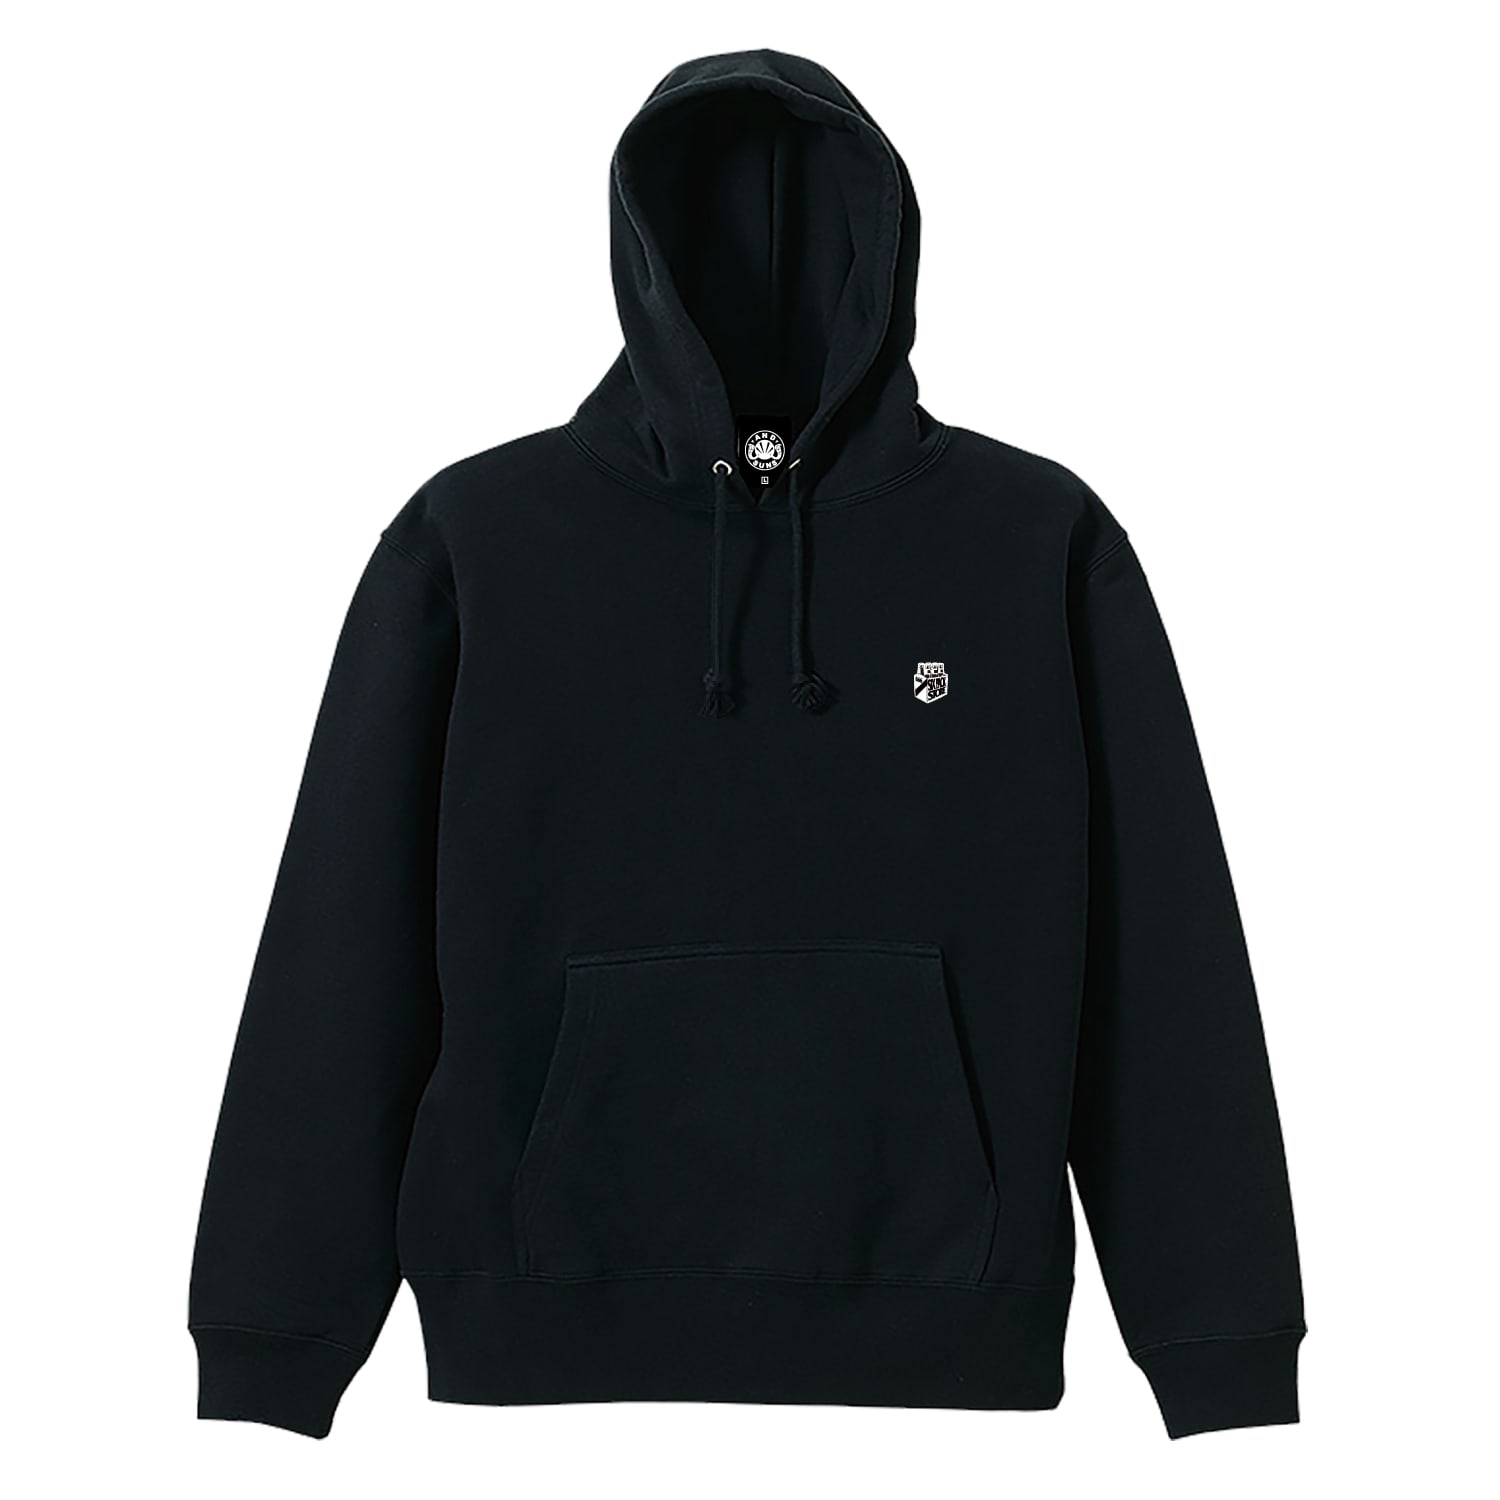 SIX PACK X AnotA X ANDSUNS PULLOVER